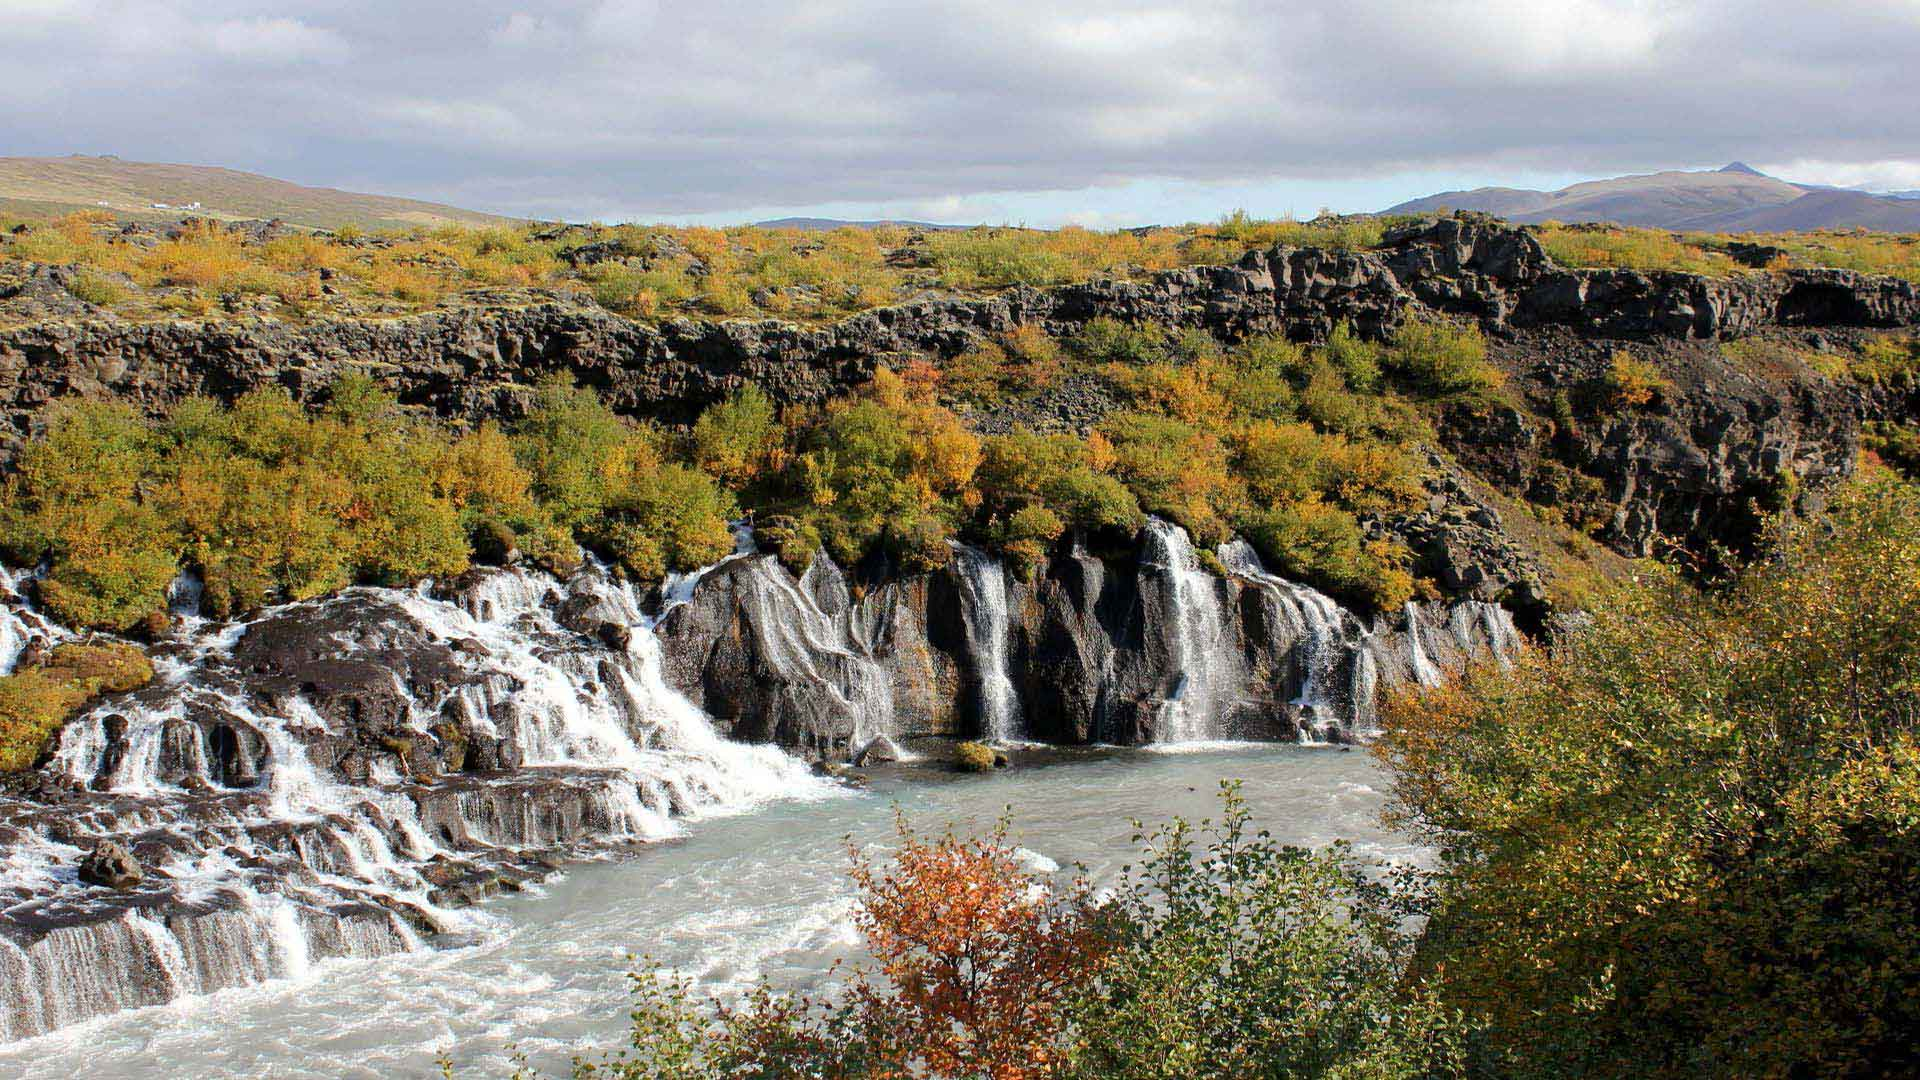 The falls of Hraunfossar in West Iceland